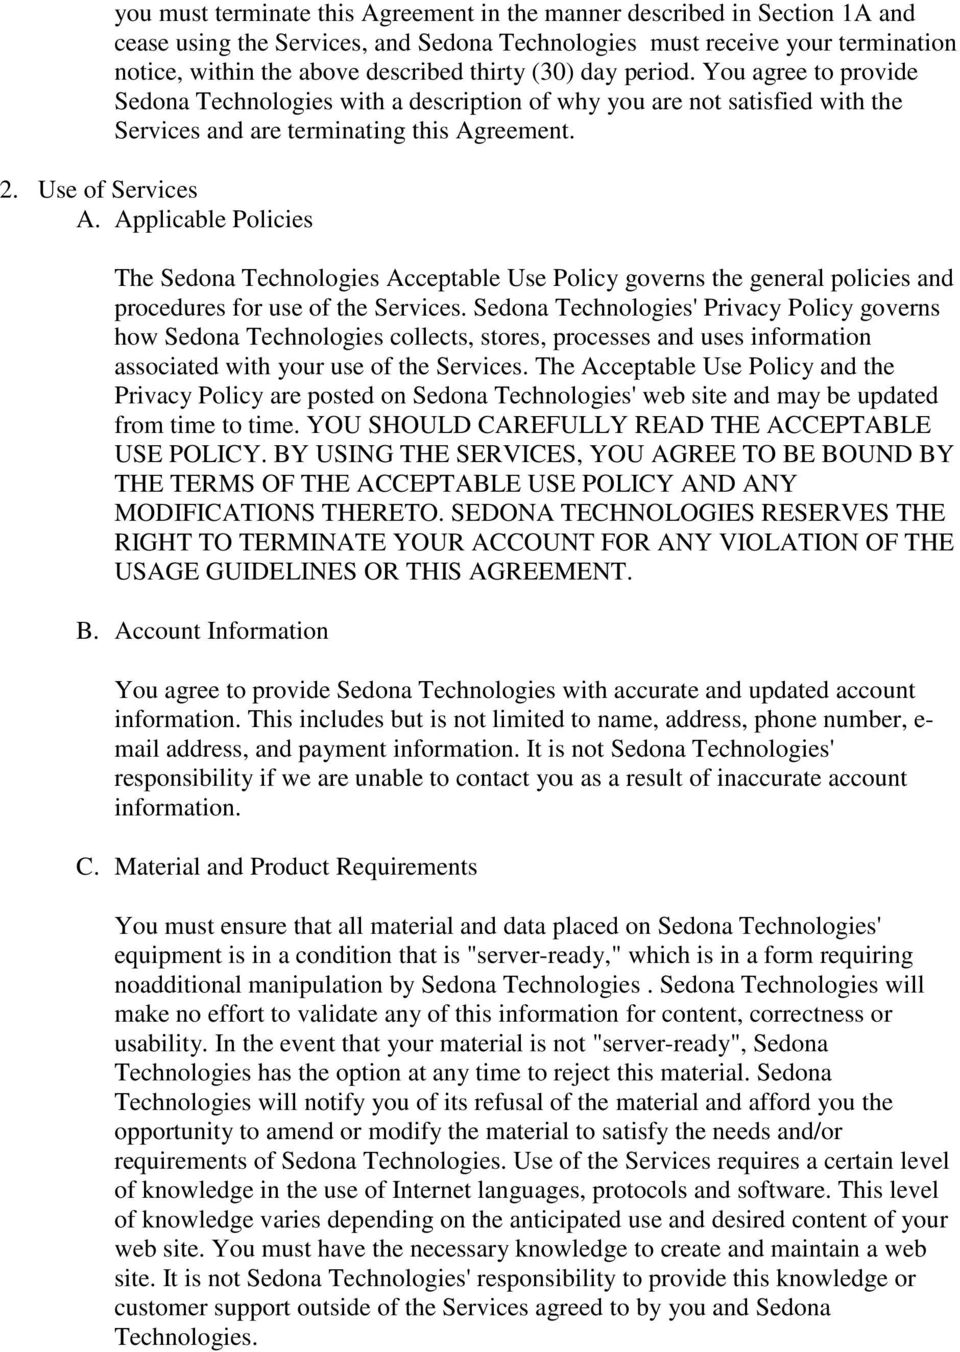 Applicable Policies The Sedona Technologies Acceptable Use Policy governs the general policies and procedures for use of the Services.